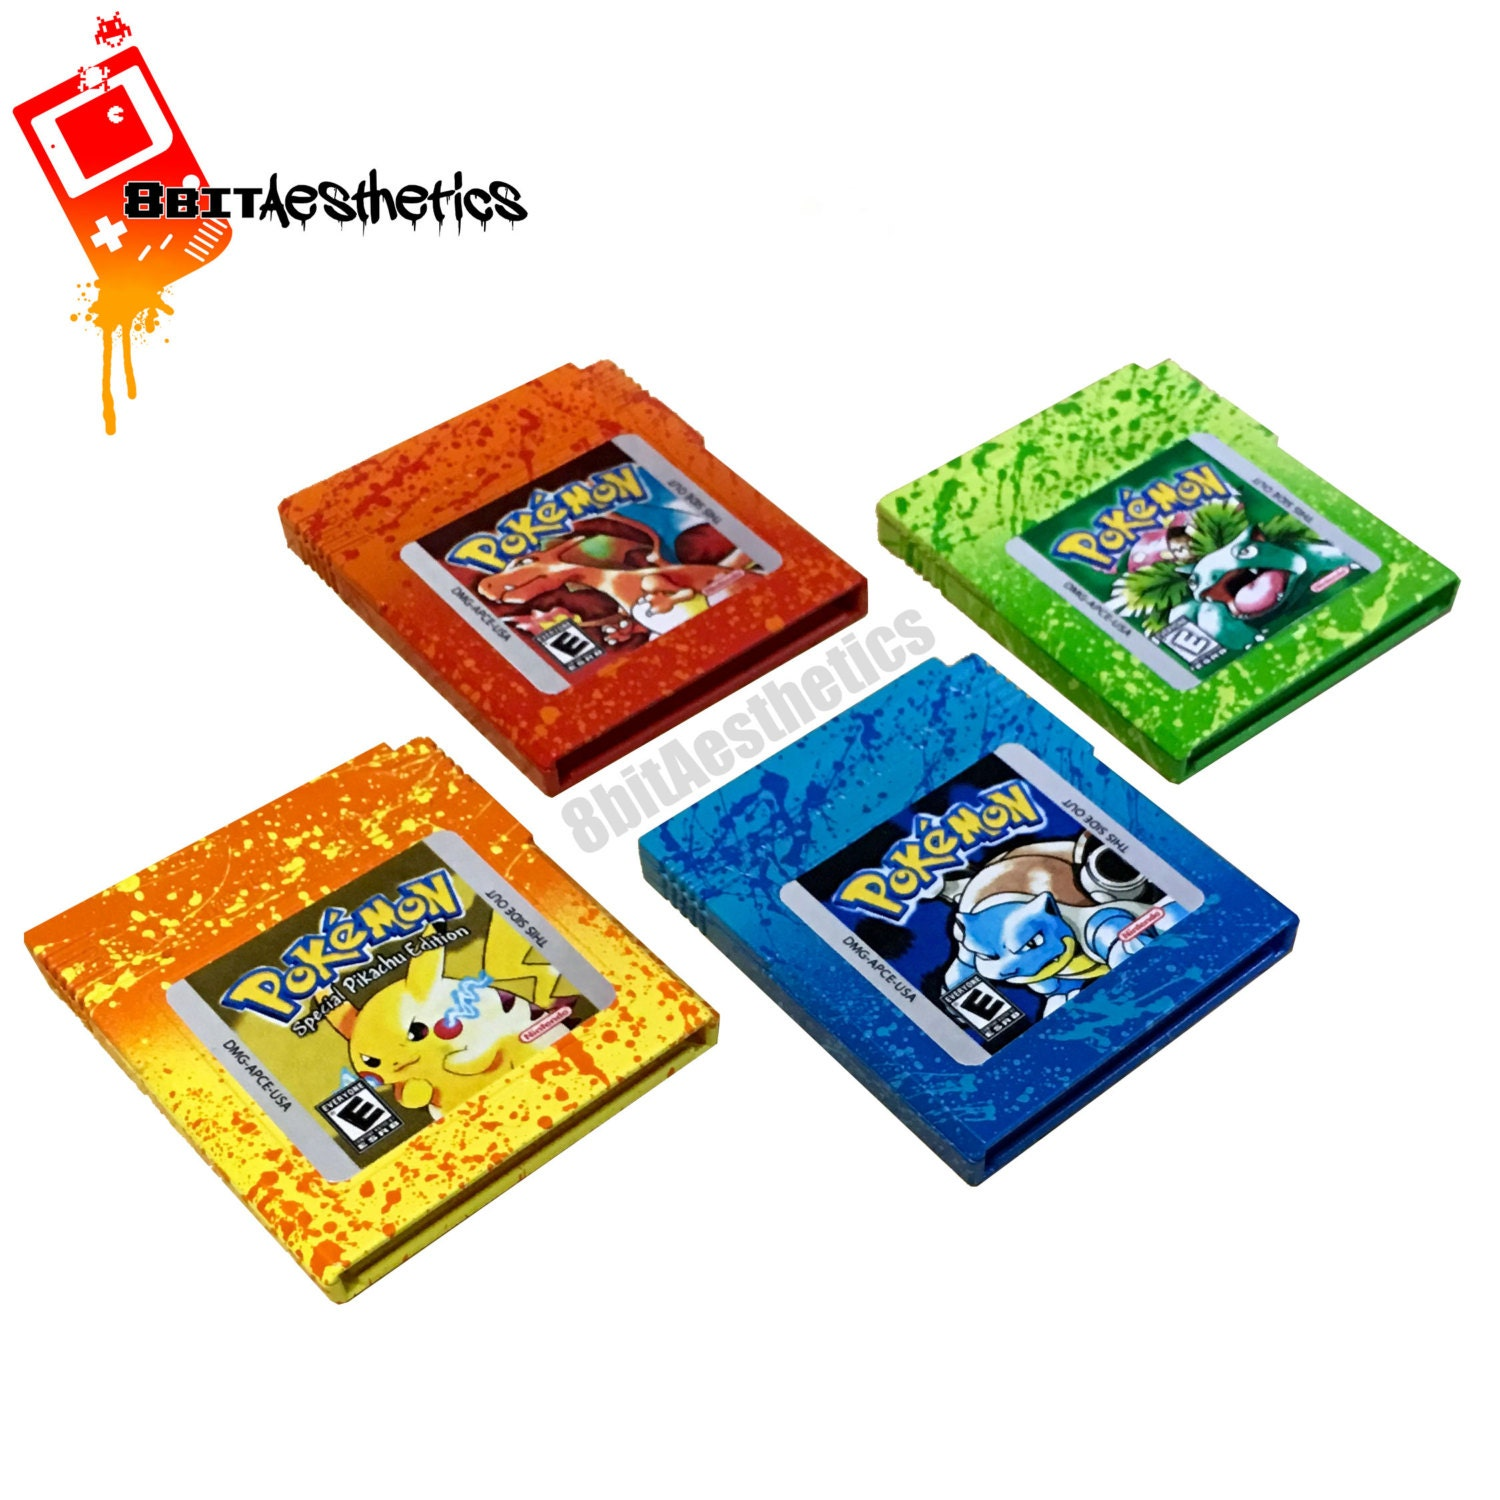 Gameboy color and pokemon yellow -  Zoom